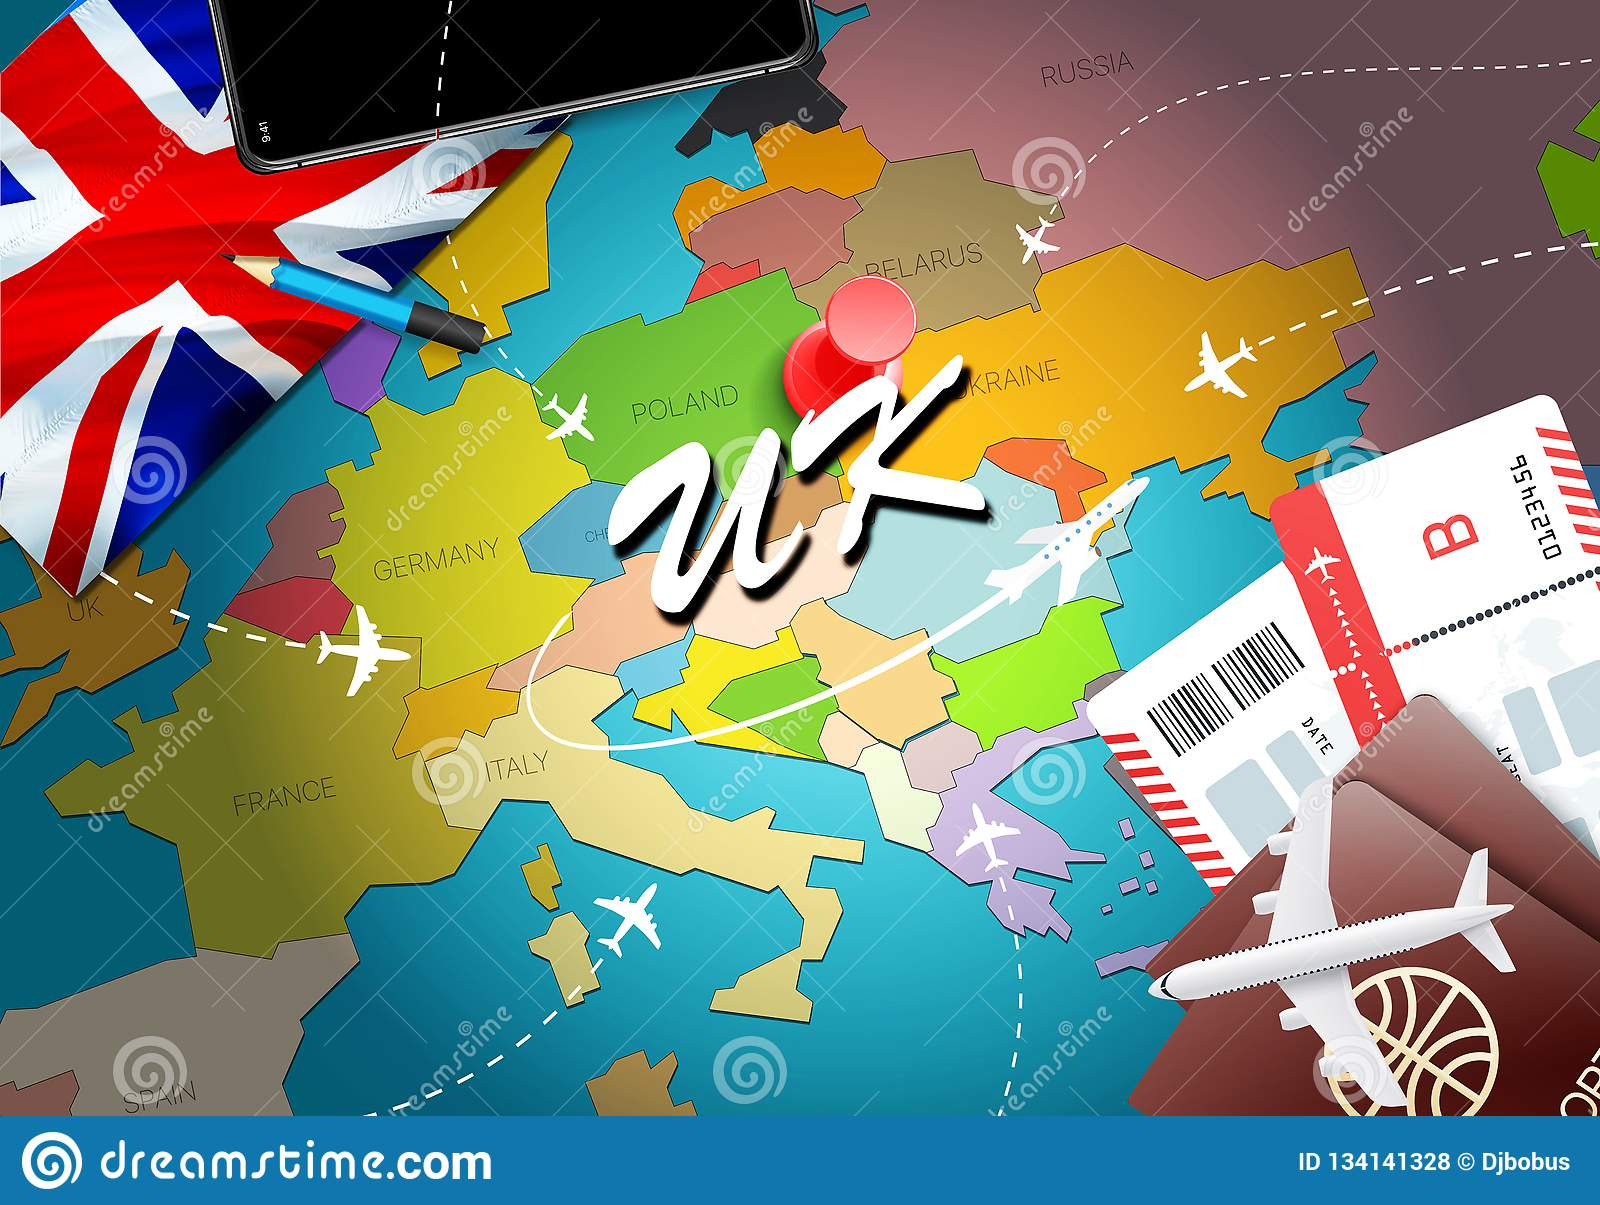 UK travel concept map background with planes,tickets. Visit UK travel and tourism destination concept. UK flag on map. Planes and